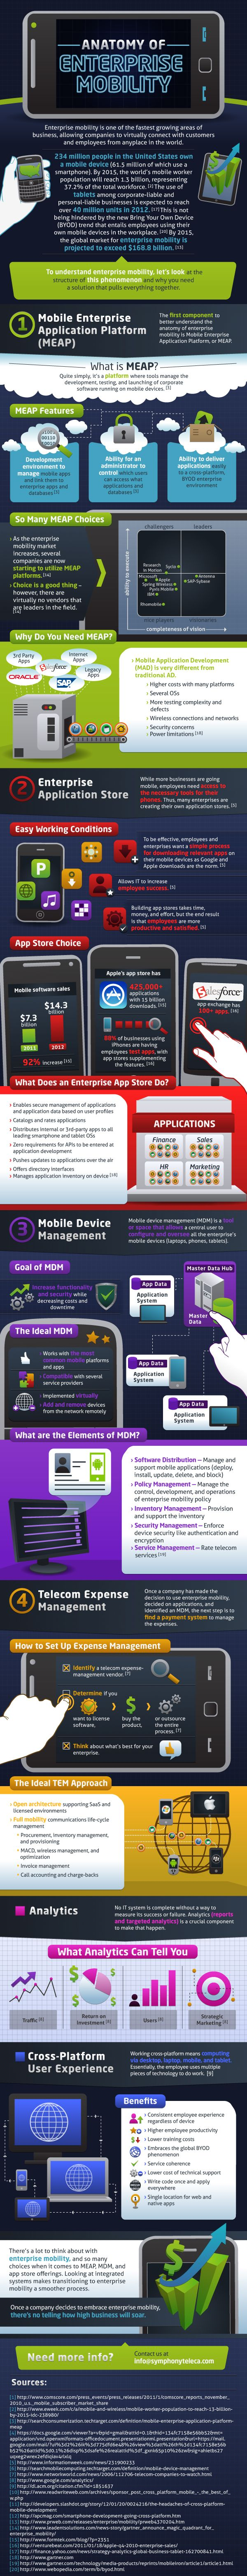 Infographic: Mobile Enterprise Application Platform (MEAP) - how enterprises can customize, control, and deploy mobile apps to their workforce